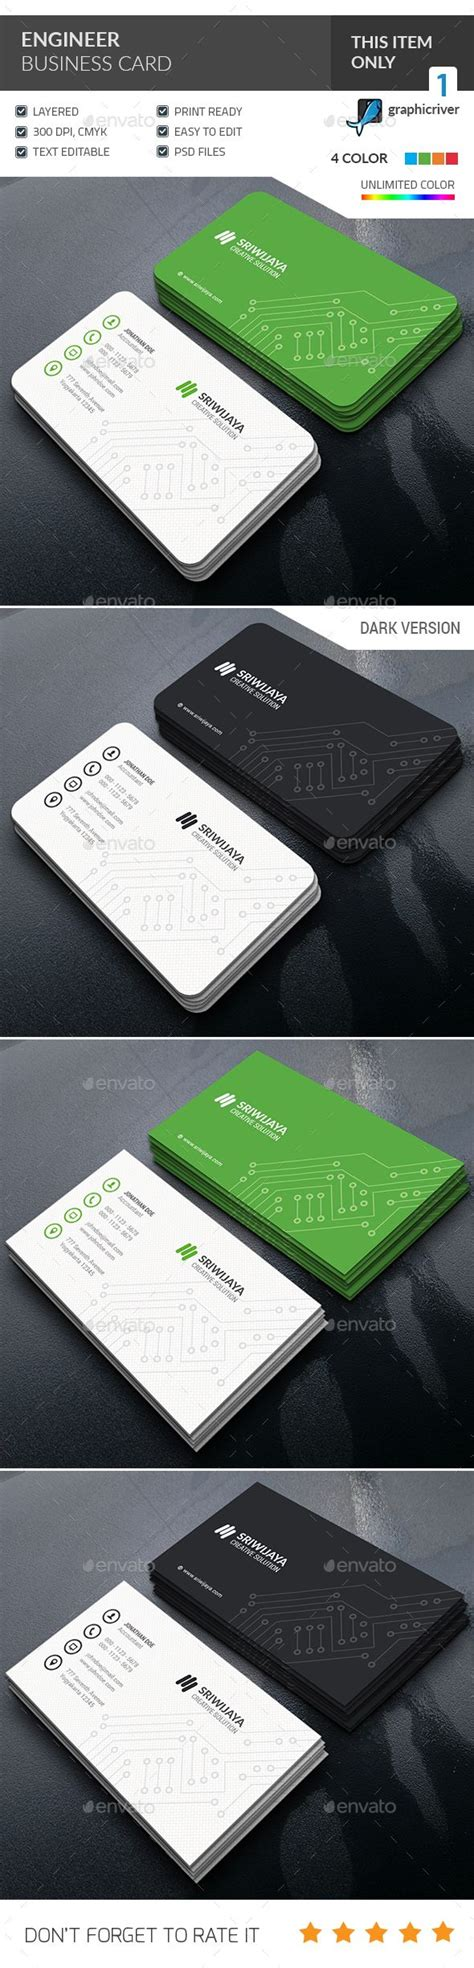 engineering business cards templates 25 best ideas about 3d business card on